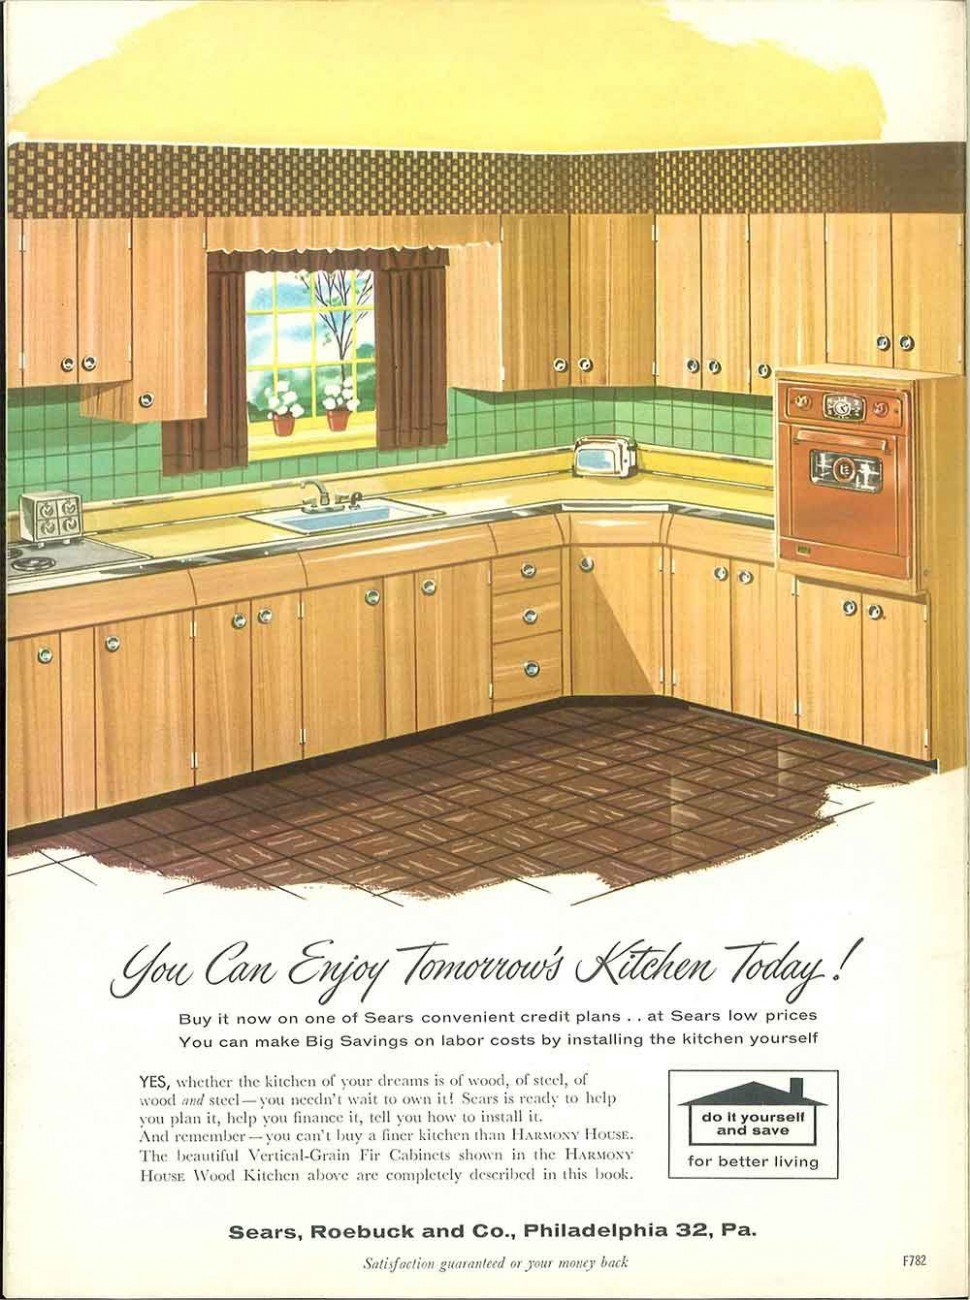 10 Sears kitchen cabinets and more - 10 page catalog -  Retro  - Vintage Sears Kitchen Cabinets